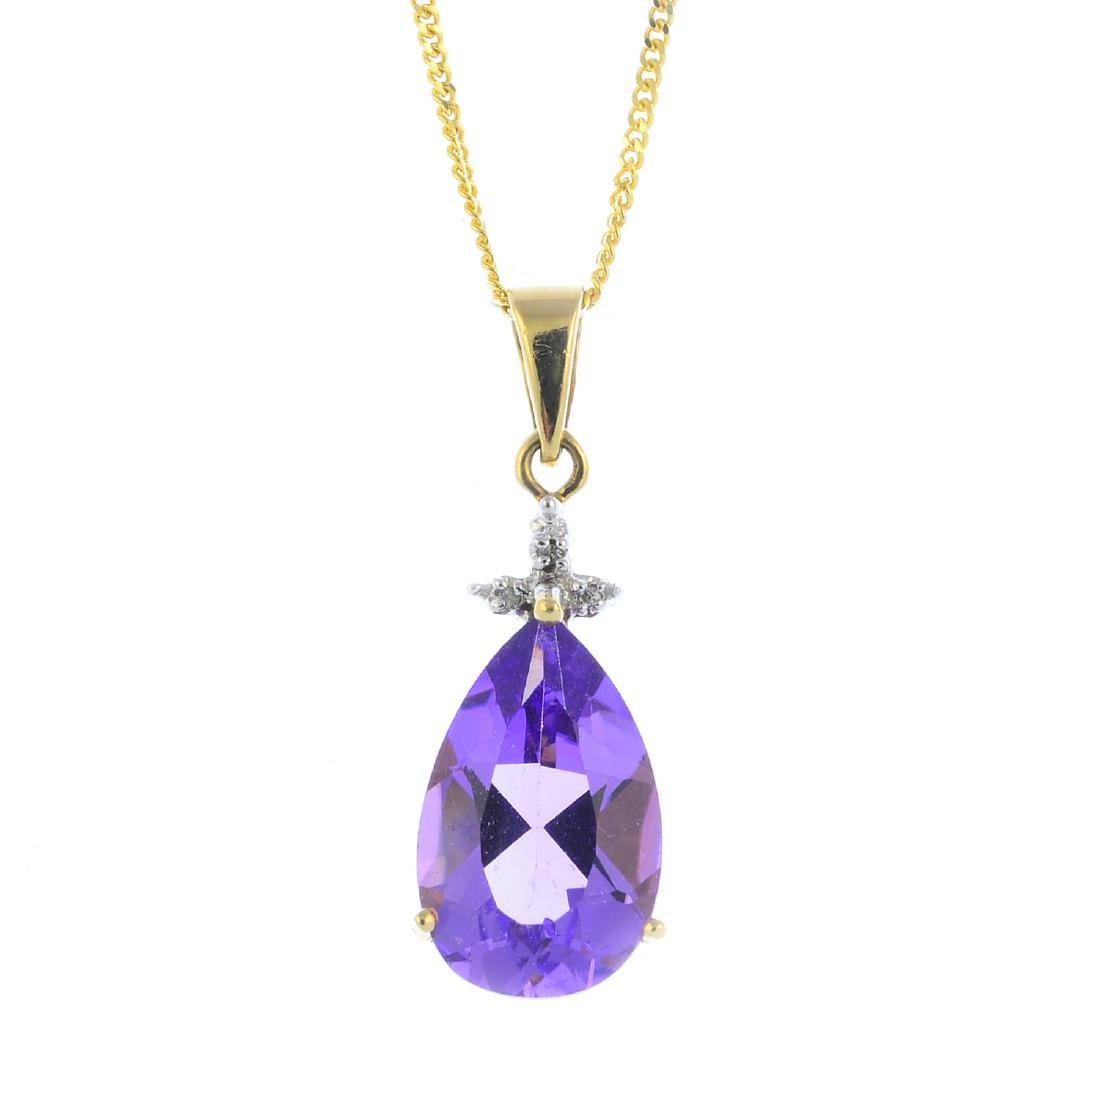 A 9ct gold amethyst and diamond pendant. The pear-shape